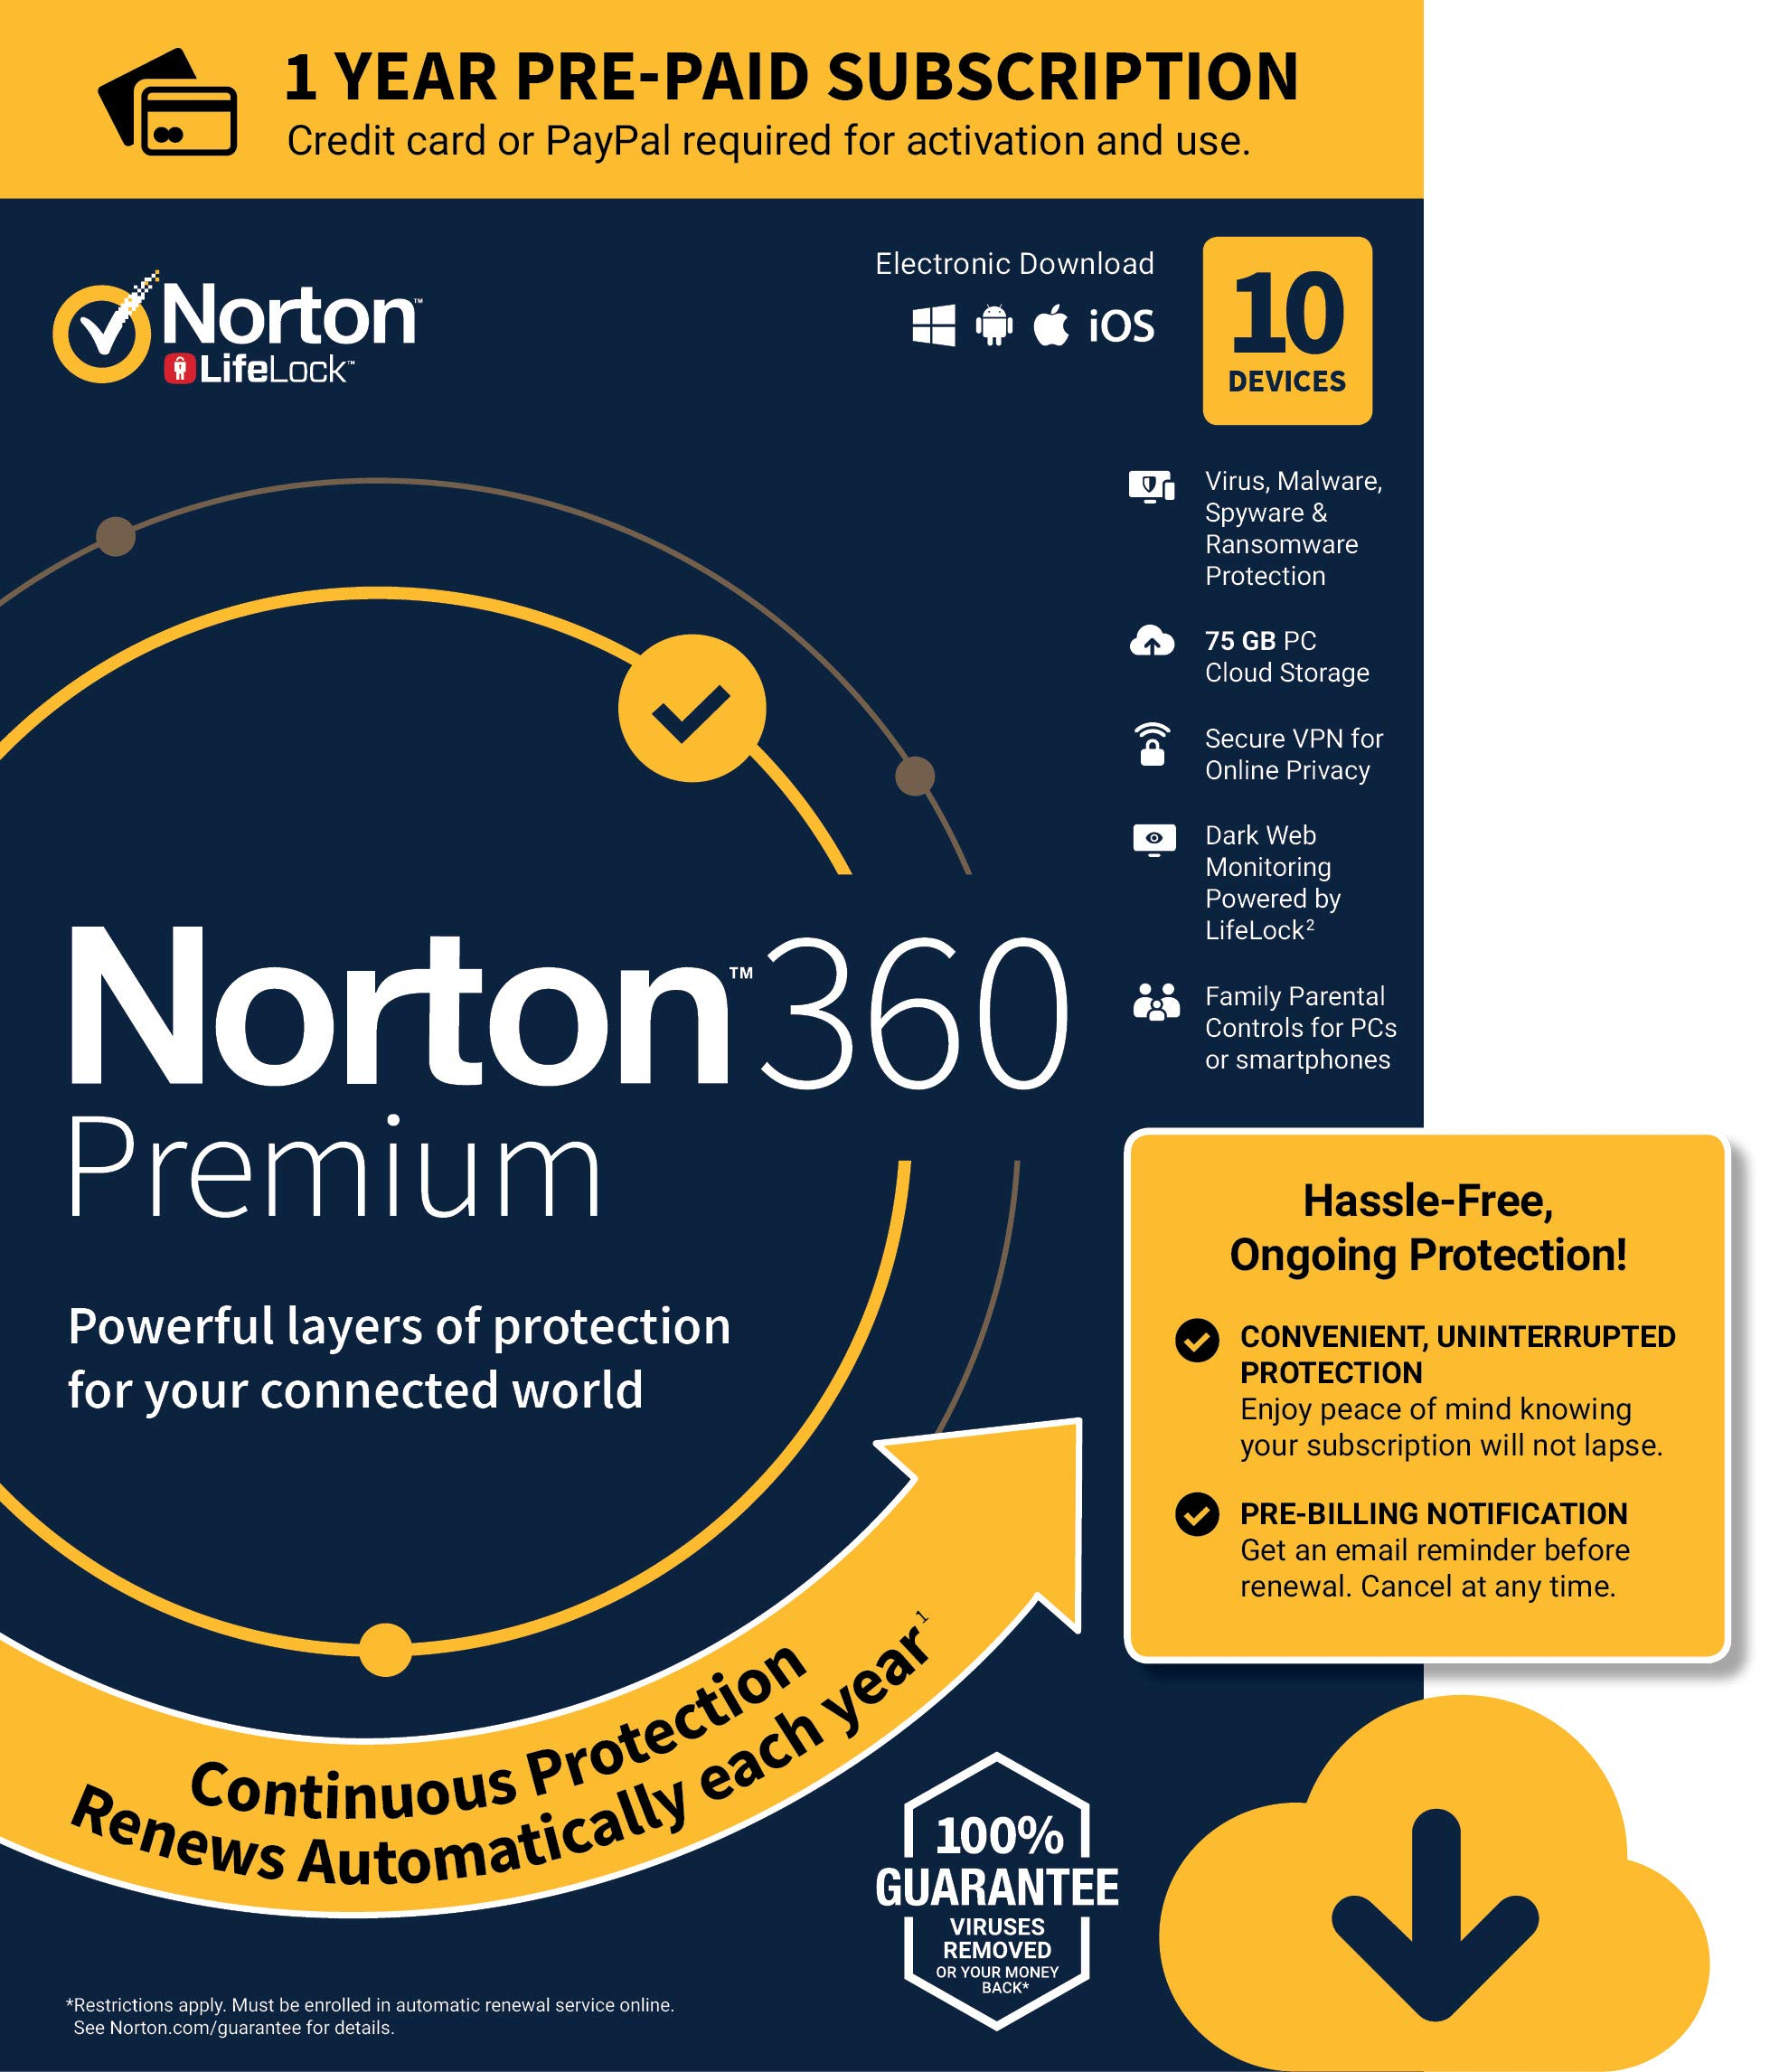 NEW Norton 360 Premium - Antivirus software for 10 Devices with Auto Renewal - Includes VPN, PC Cloud Backup & Dark Web Monitoring powered by LifeLock [PC/Mac/Mobile Download] by Symantec